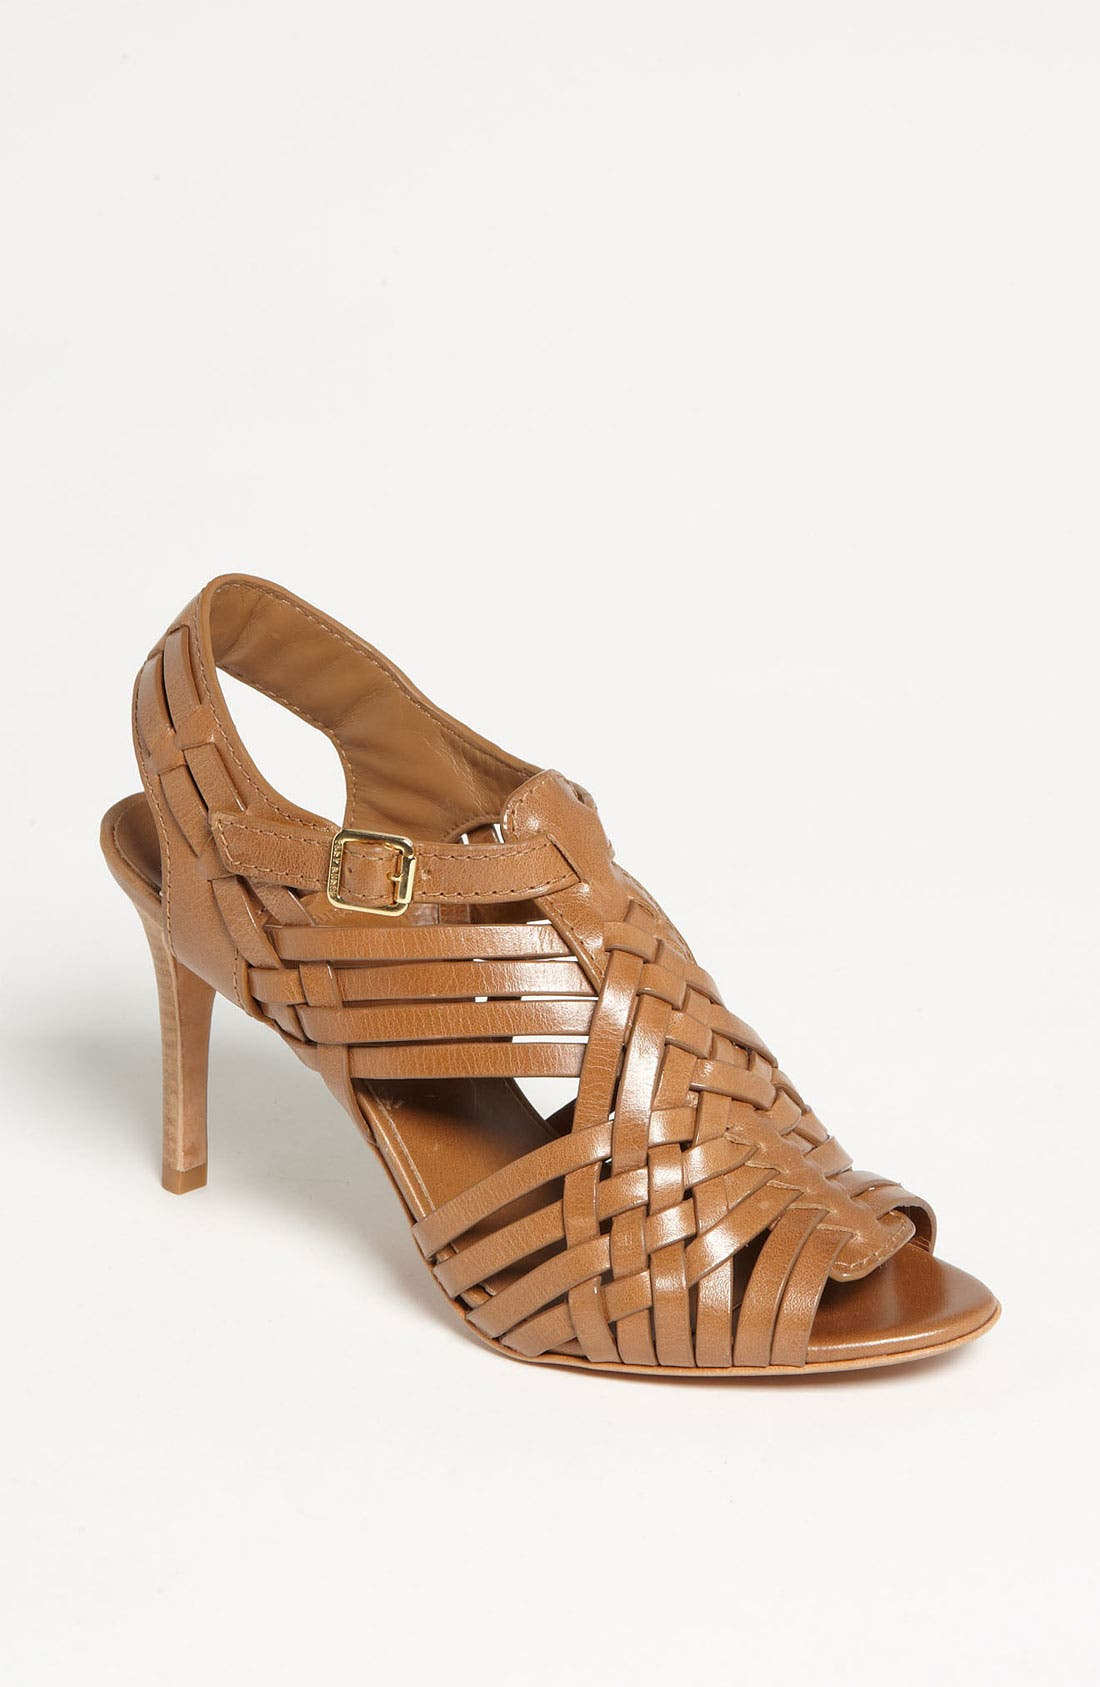 Alternate Image 1 Selected - Tory Burch 'Nadia' Sandal